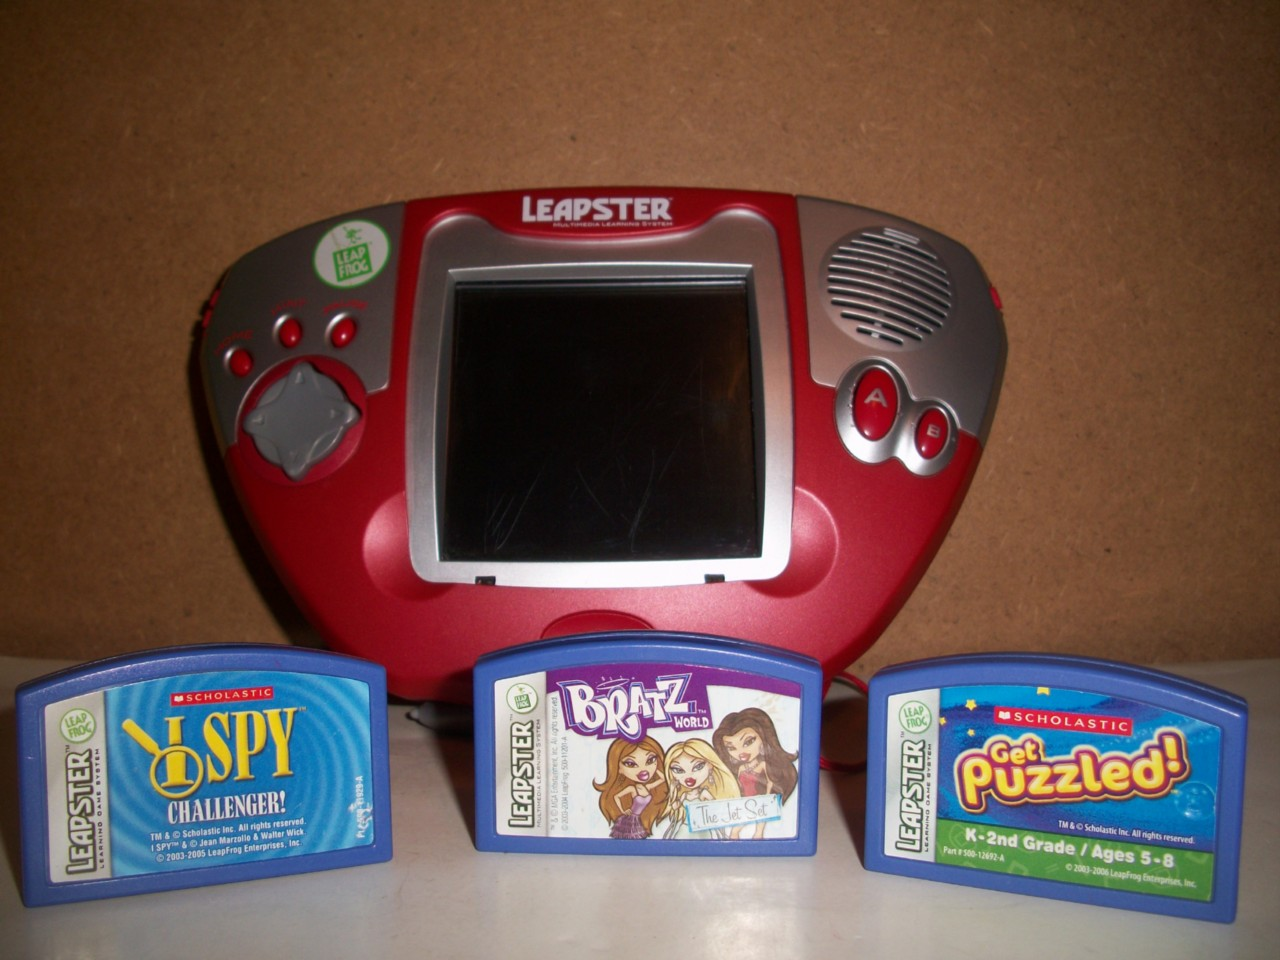 Product Description. LeapFrog Leapster Explorer Learning Game System, Green jayslowlemangbud.ga The Leapster Explorer Learning Game System from LeapFrog is an exciting, handheld gaming device that includes preset games and videos, and boasts plenty of downloadable features and cartridges.